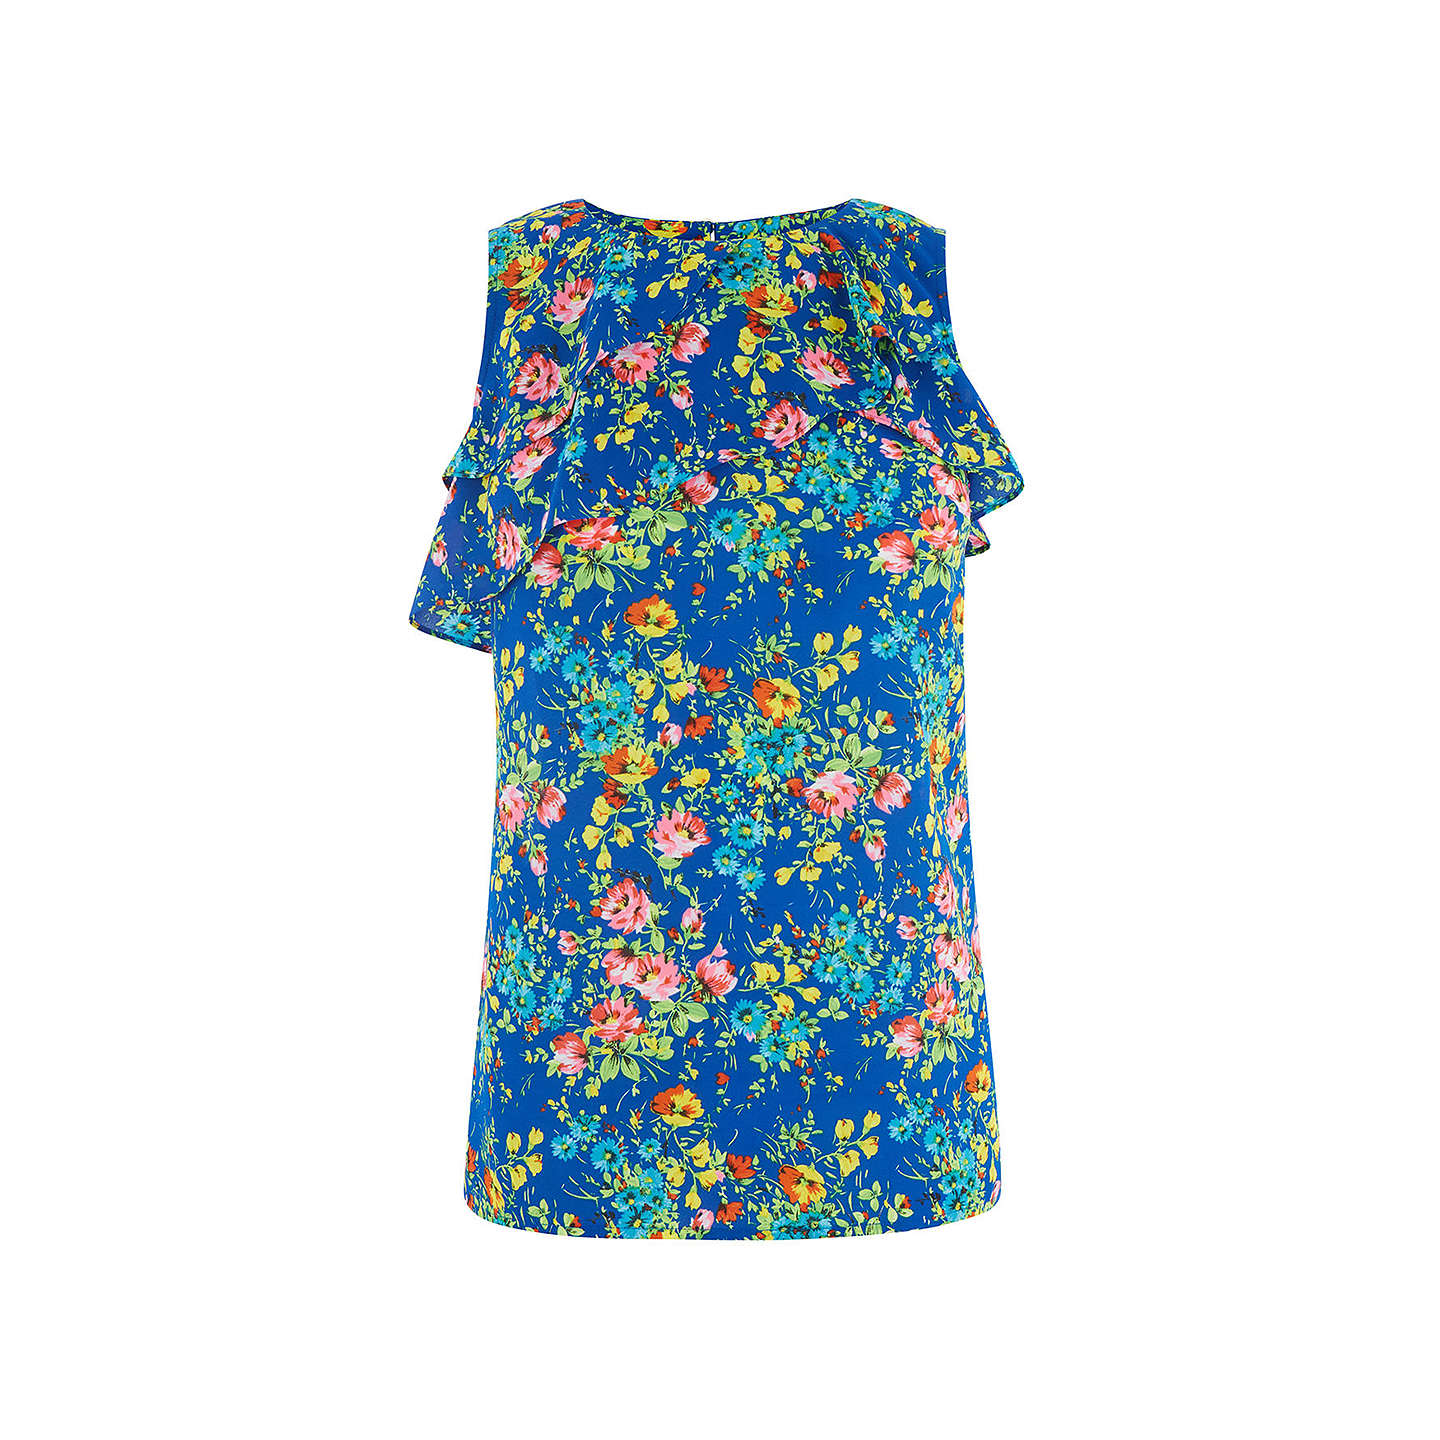 BuyOasis Painted Posy Shell Top, Multi/Blue, 8 Online at johnlewis.com